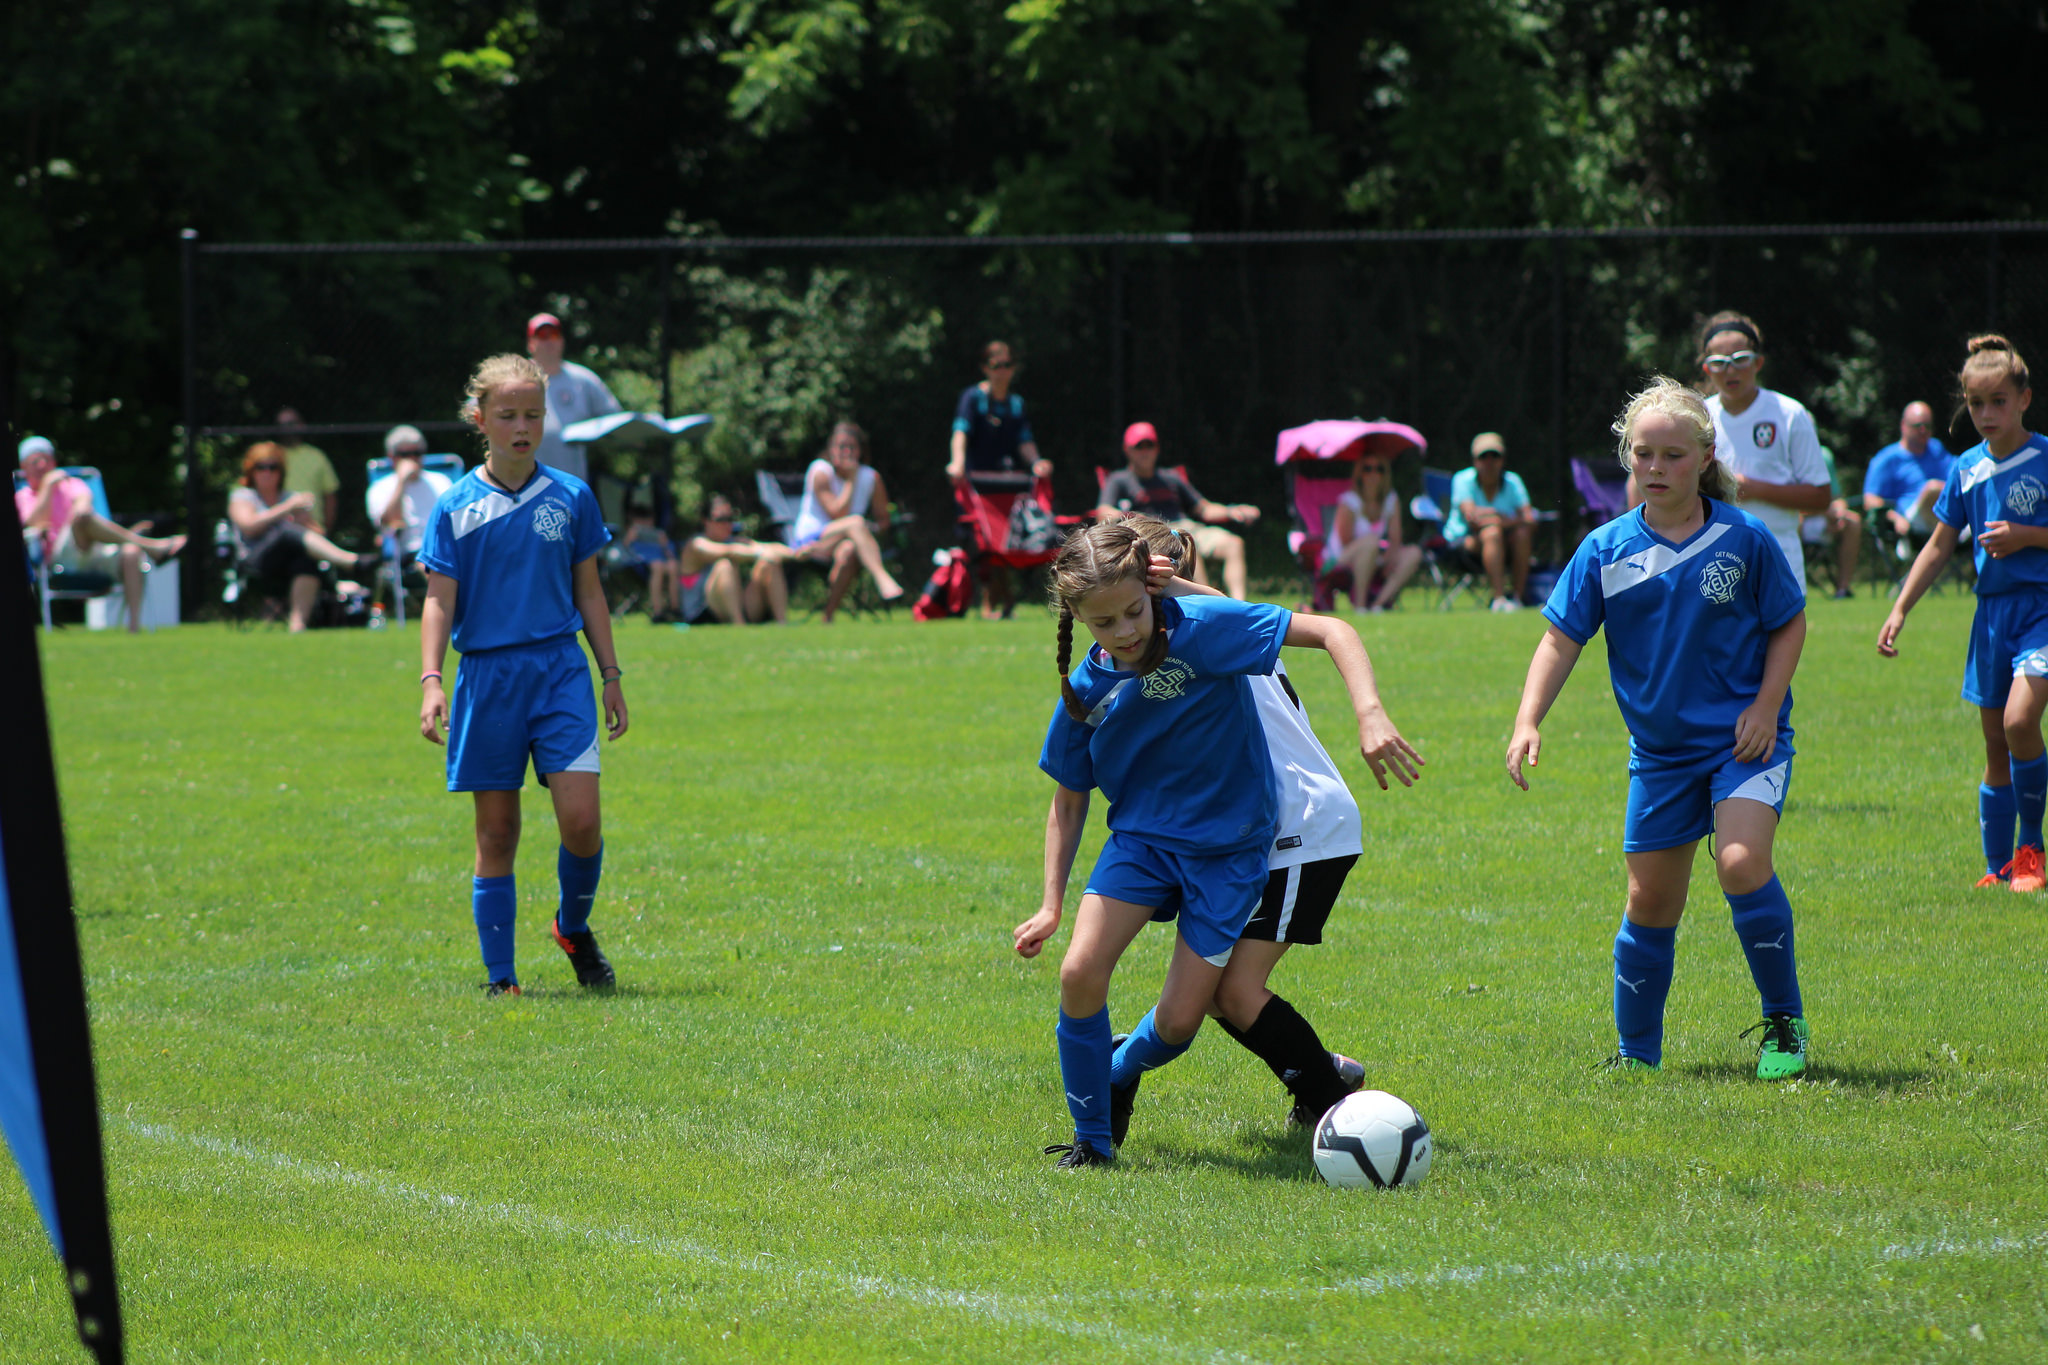 Youth Soccer Camps, Training, Tournaments & Tours | UK Elite